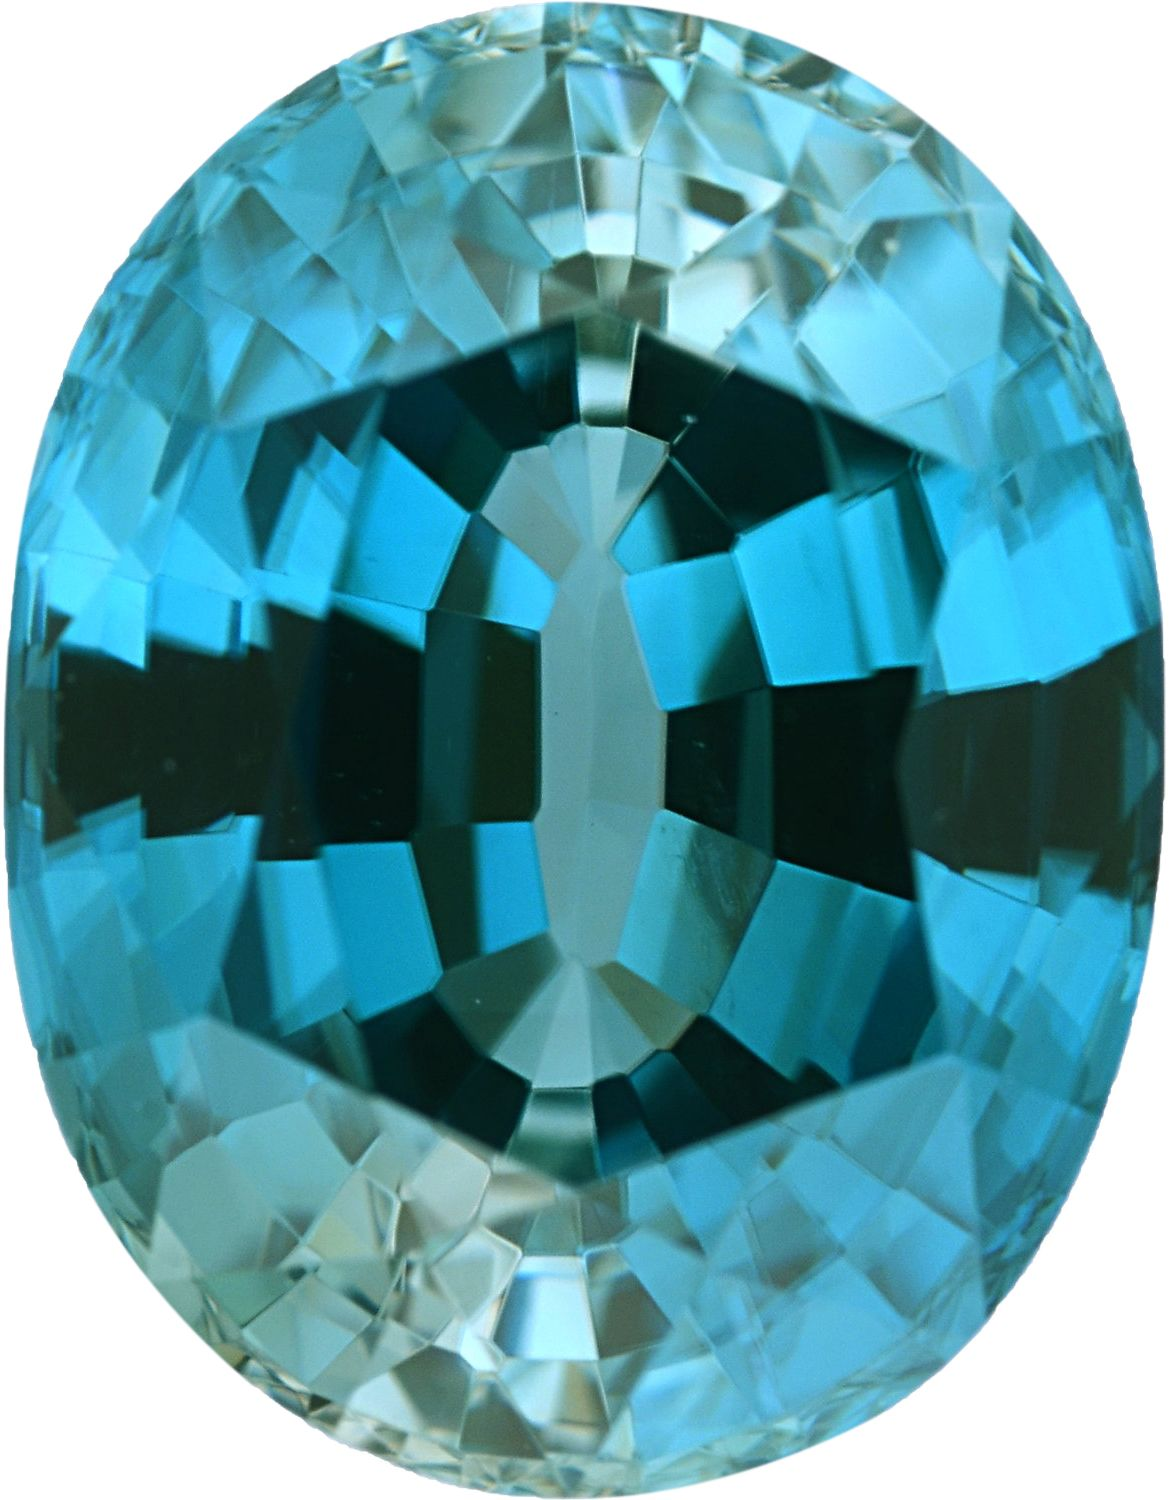 Blue Zircon Gemstone Deals